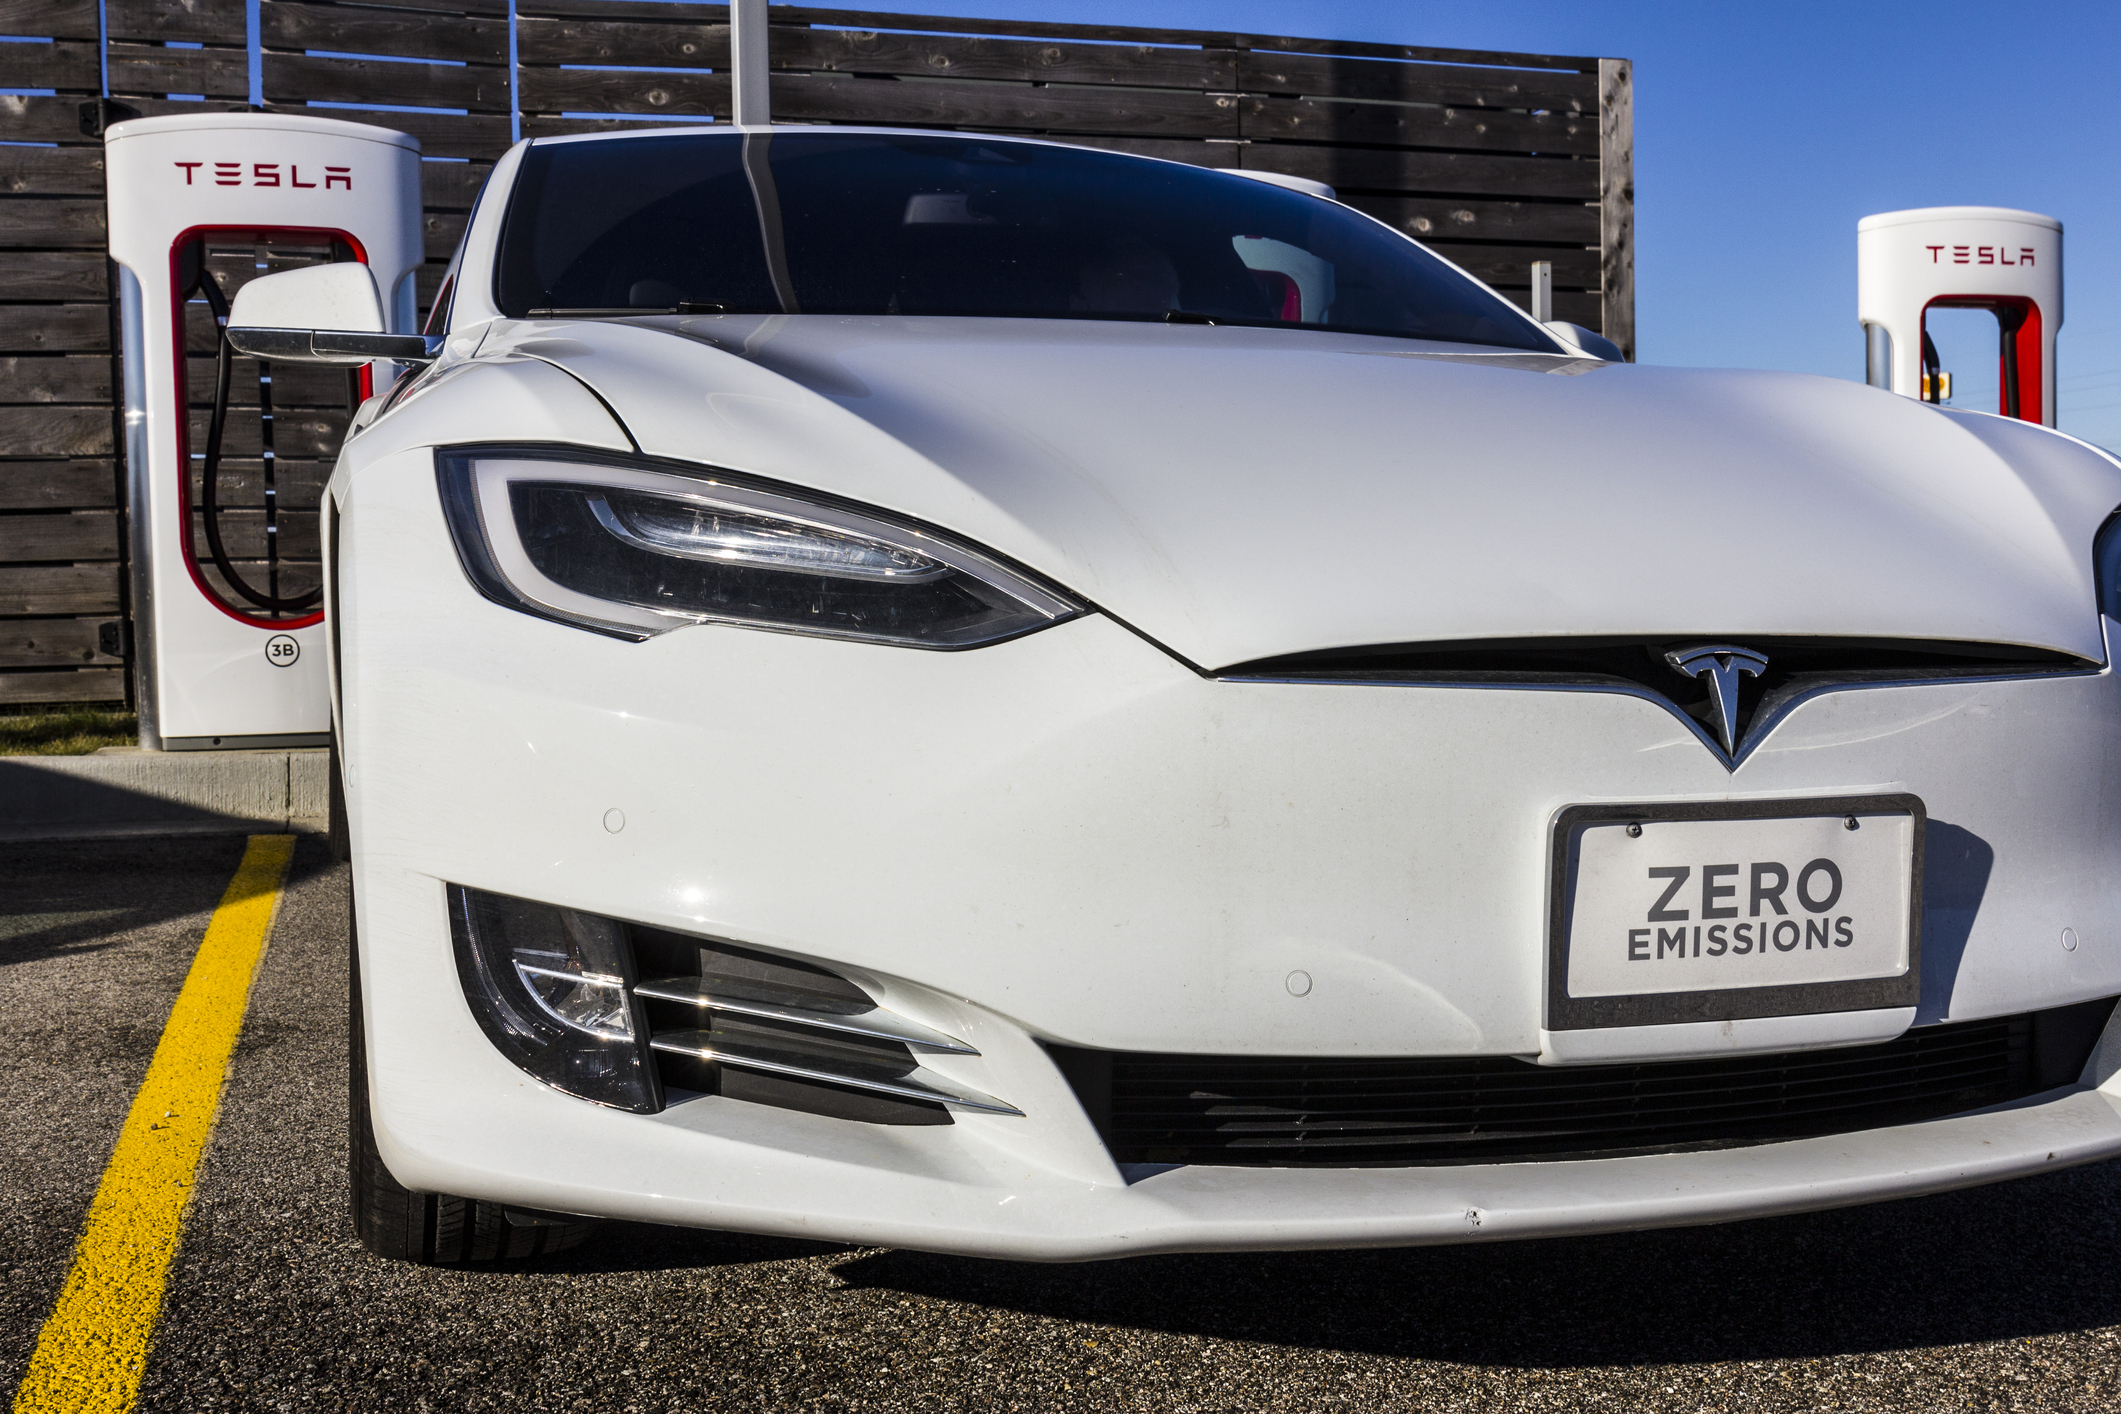 Will U.S. Automakers Successfully Adapt to a World That Demands Electric Cars?